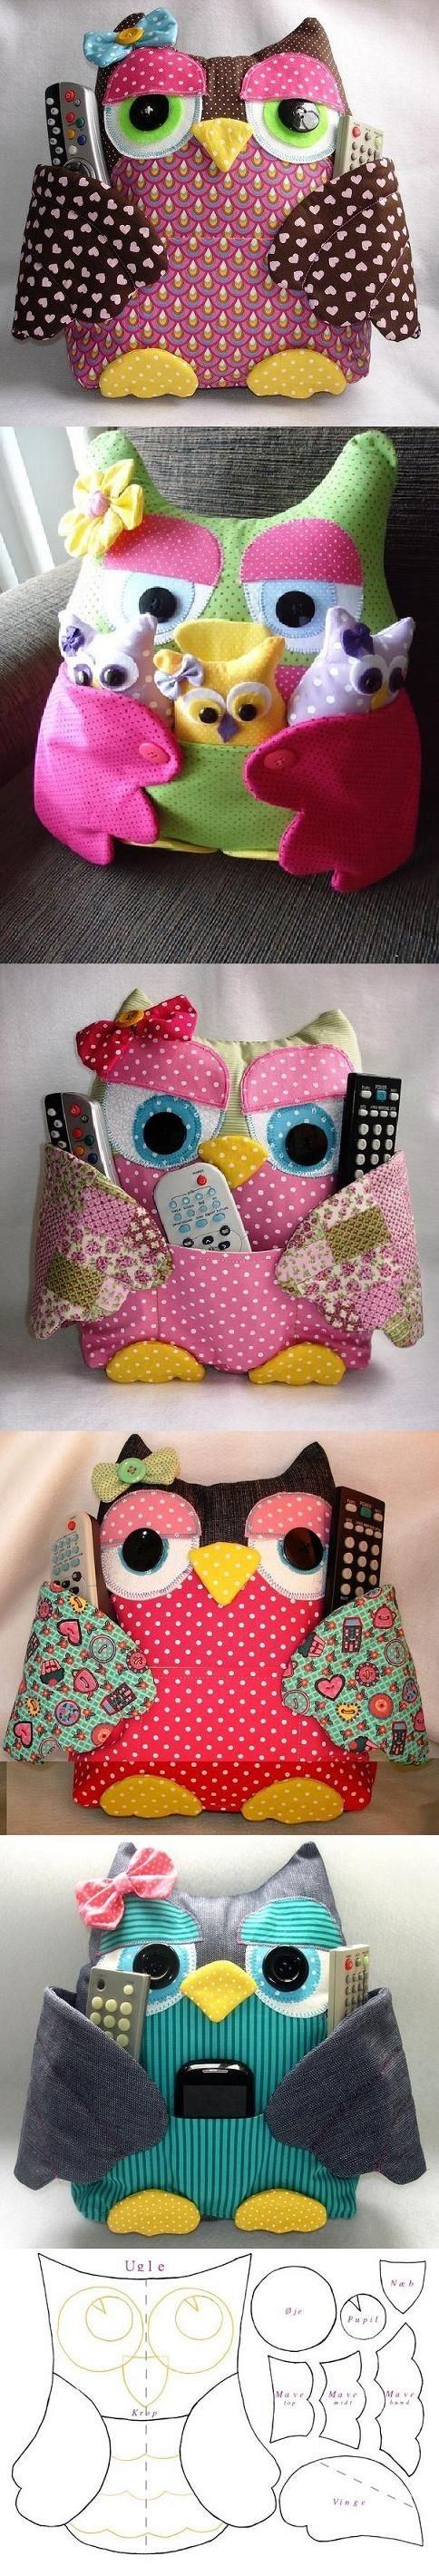 So cute: DIY Owl Pad with Pockets